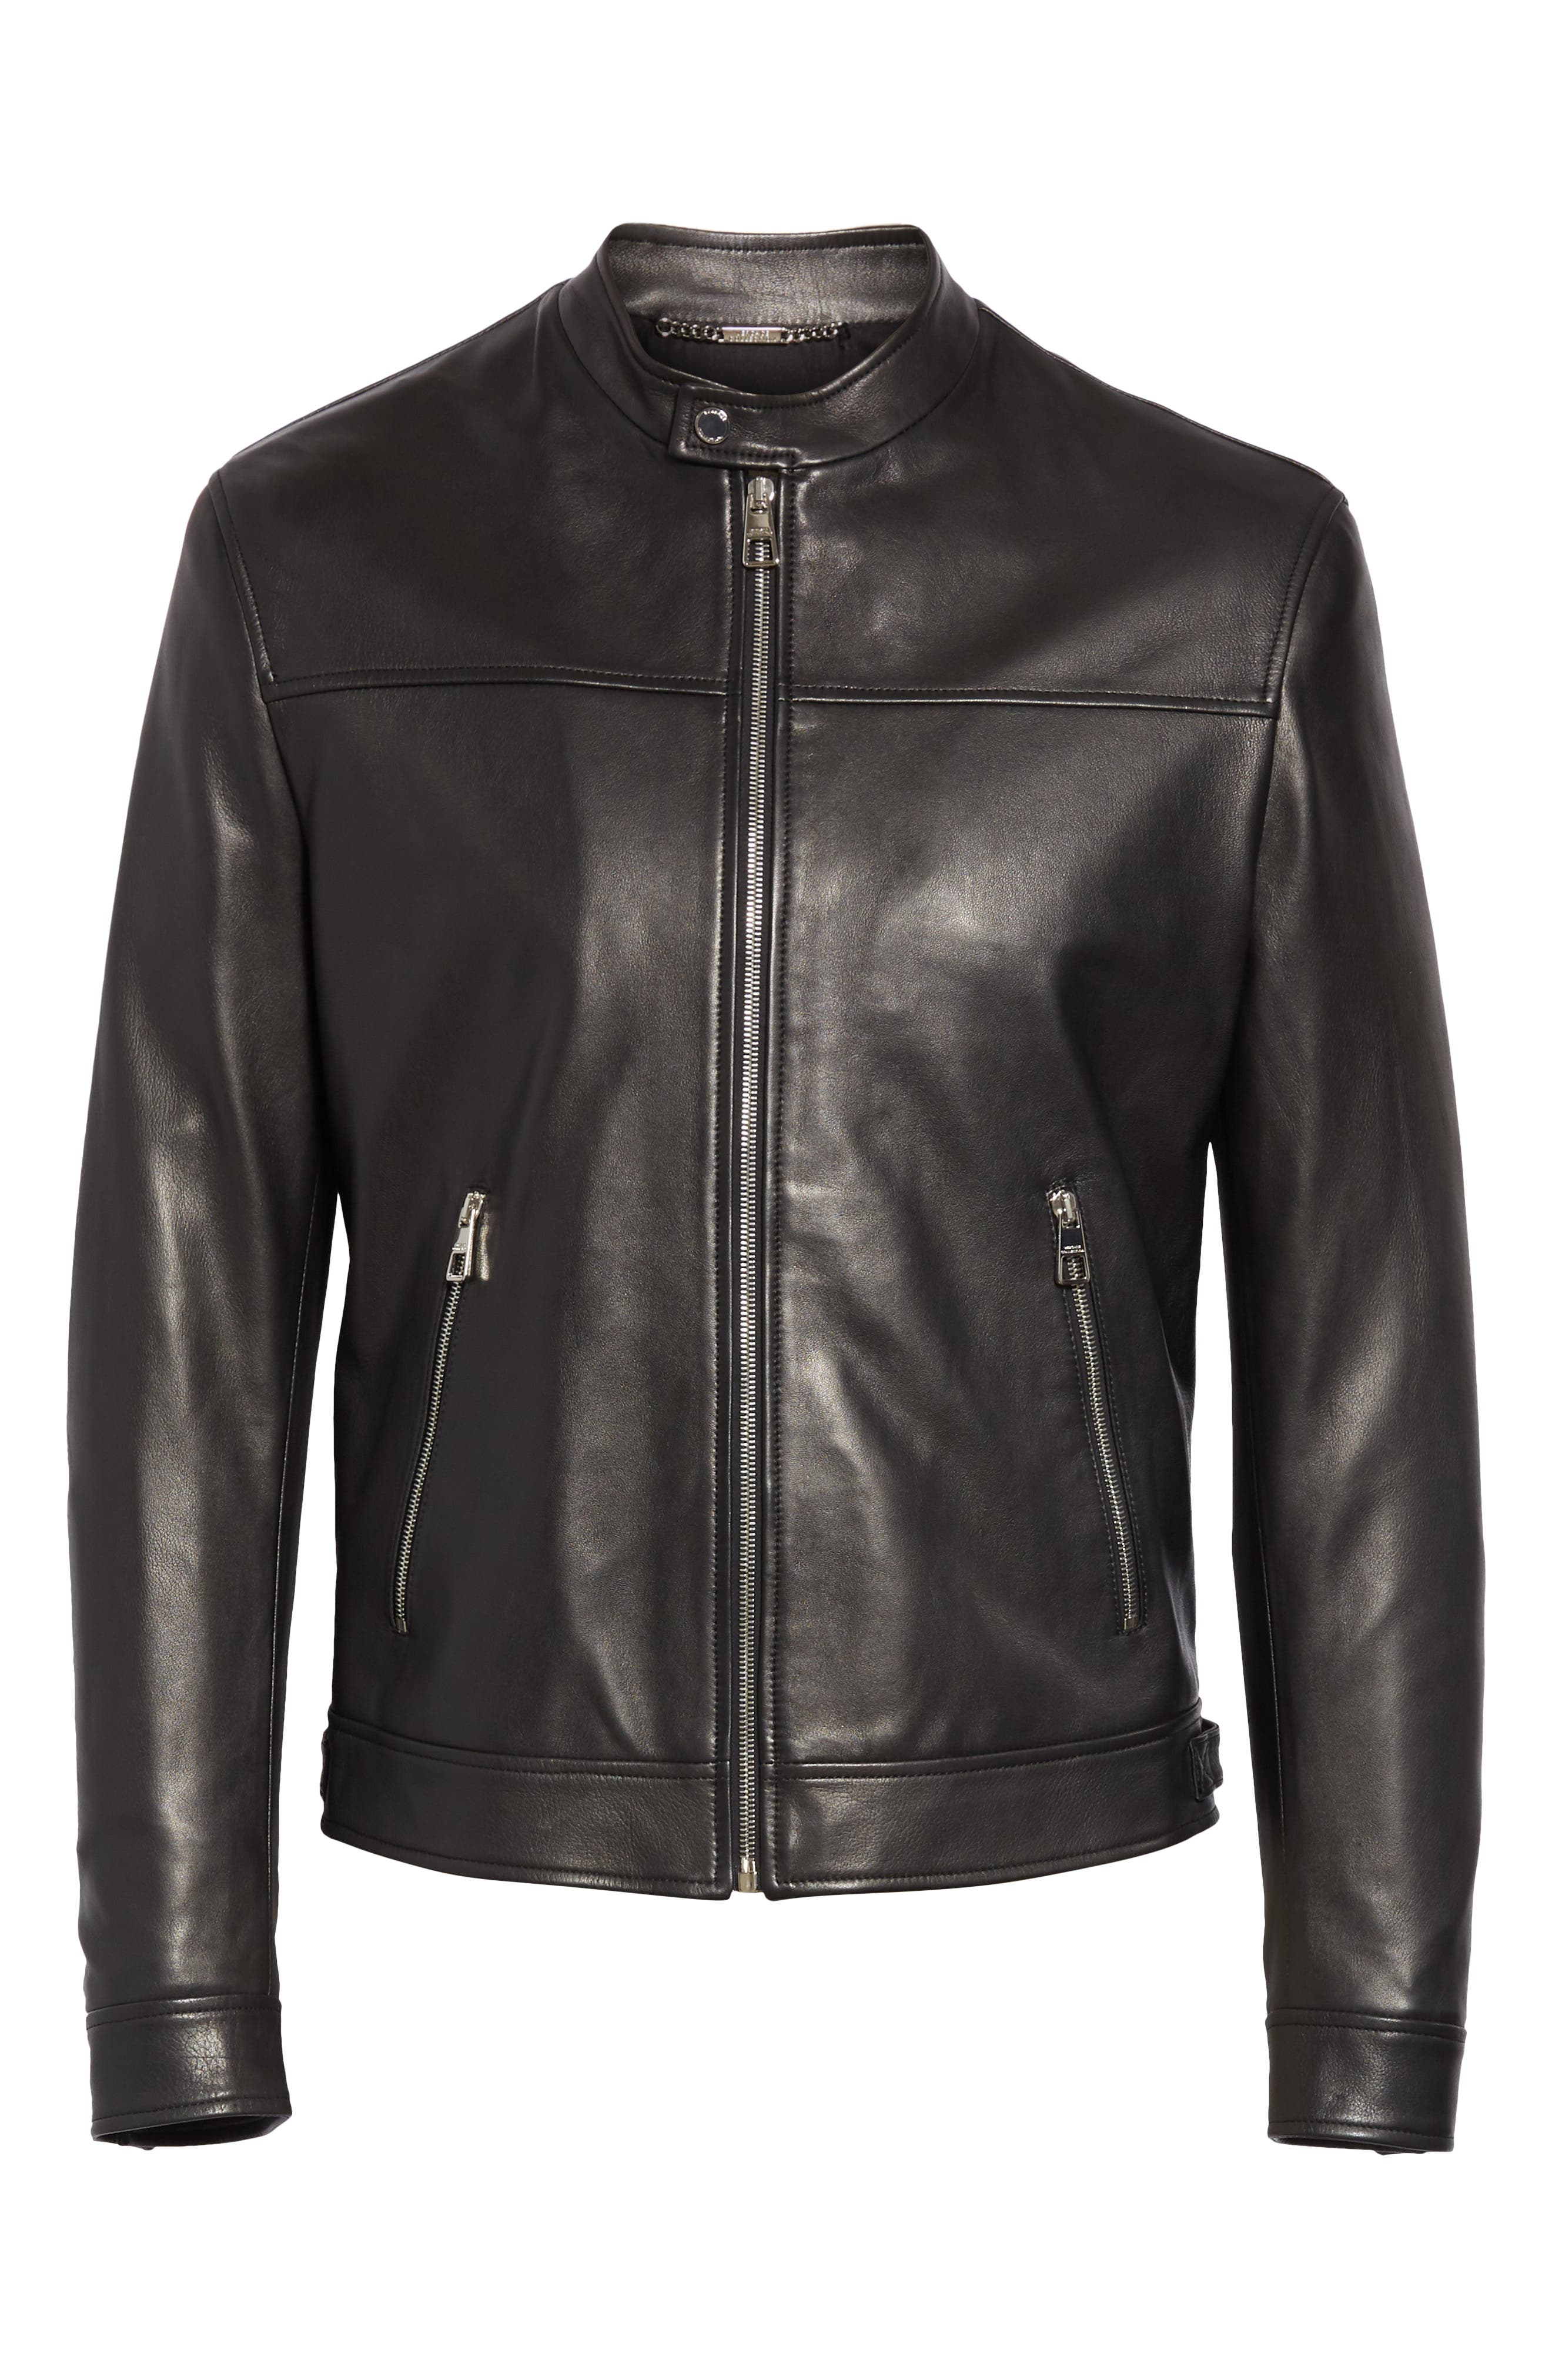 VERSACE COLLECTION, Lambskin Leather Jacket, Alternate thumbnail 5, color, 001